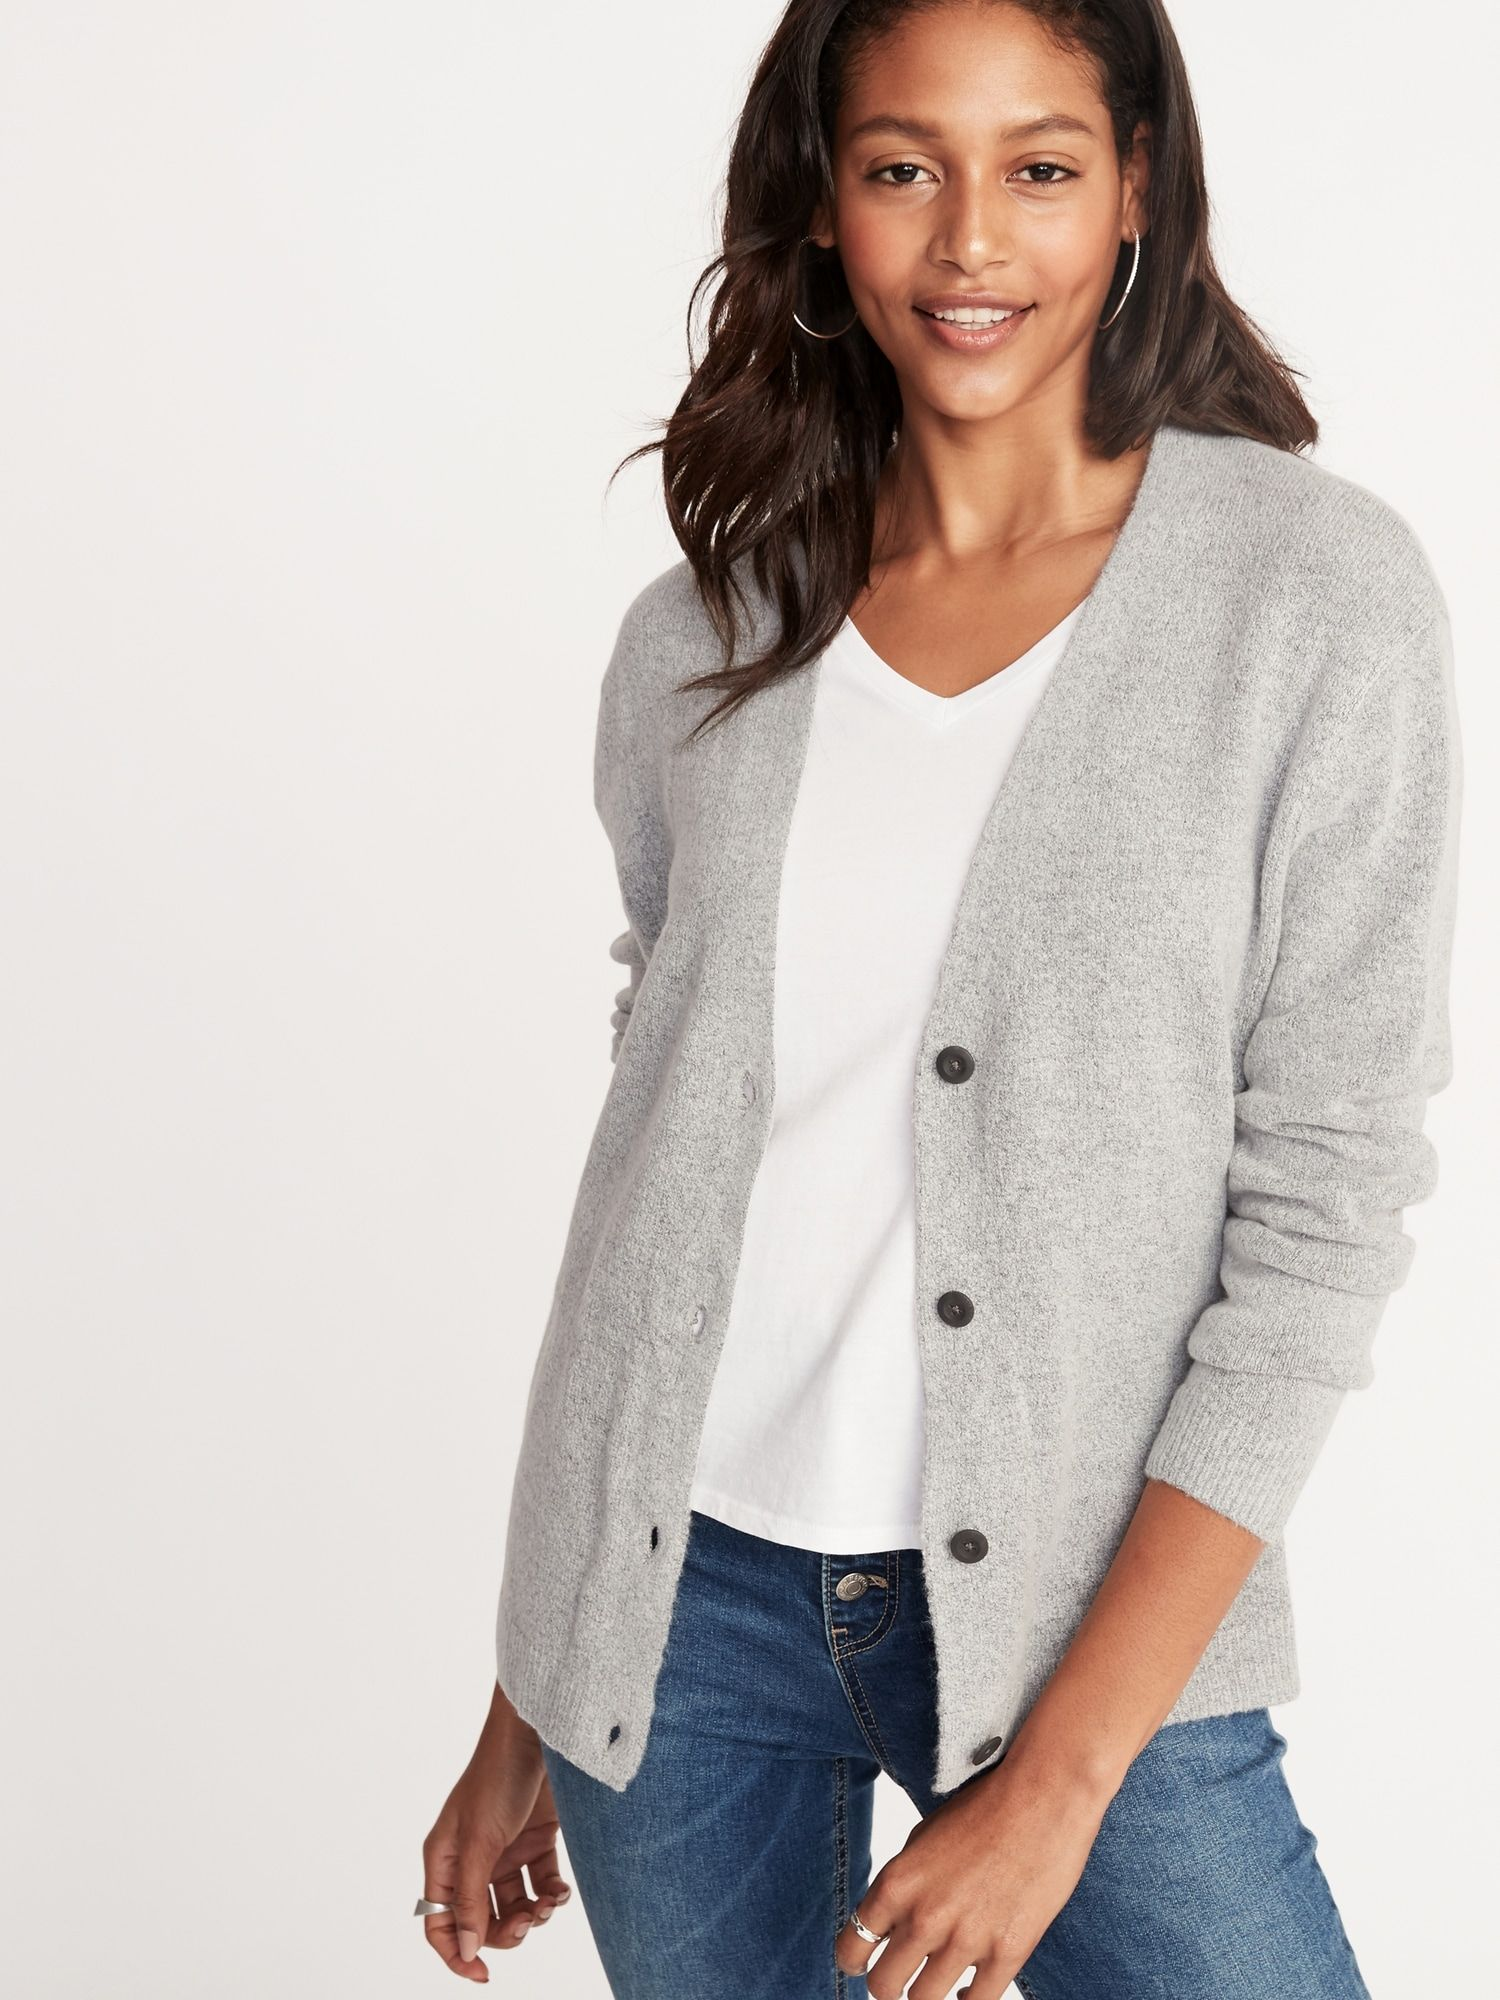 ac908a7270a3e0 Slouchy Soft-Brushed V-Neck Cardi for Women in 2019 | Business ...